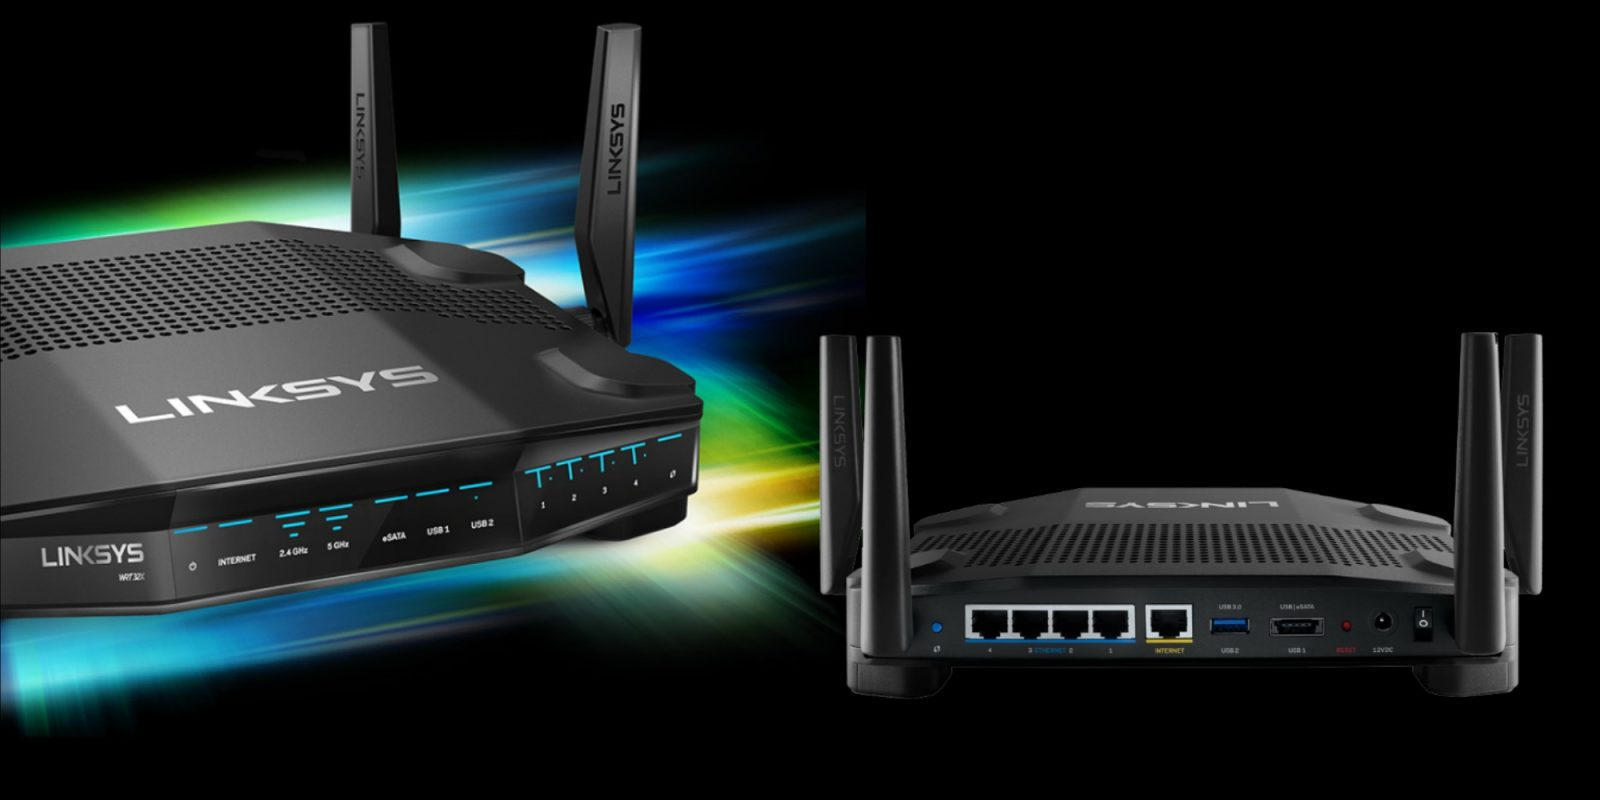 Pair your Xbox One w/ Linksys' 802.11ac Gaming Router at $83.50 (60% off), more